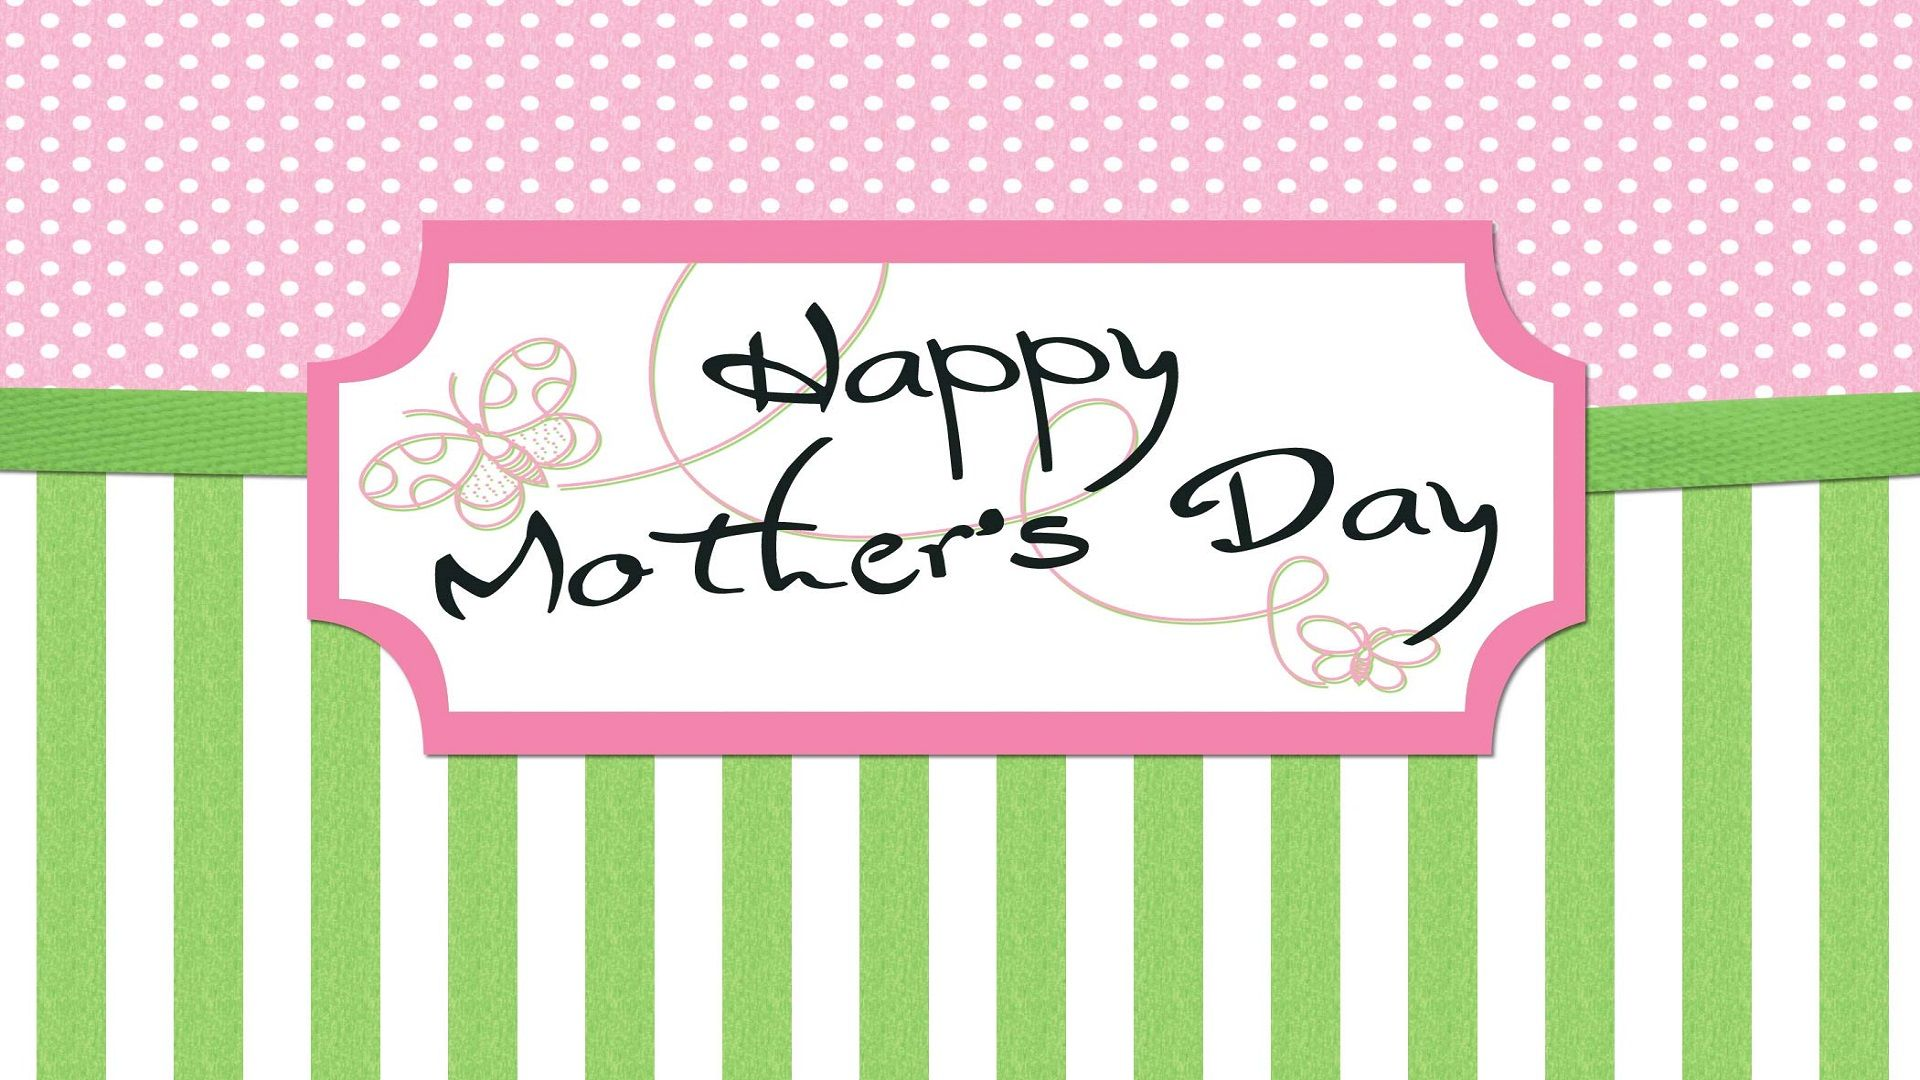 Happy Mothers Day Wallpaper Background 9to5animations Com Hd Wallpapers Gifs Backgrounds Images Happy Mothers Day Wallpaper Happy Mothers Day Images Happy Mothers Day